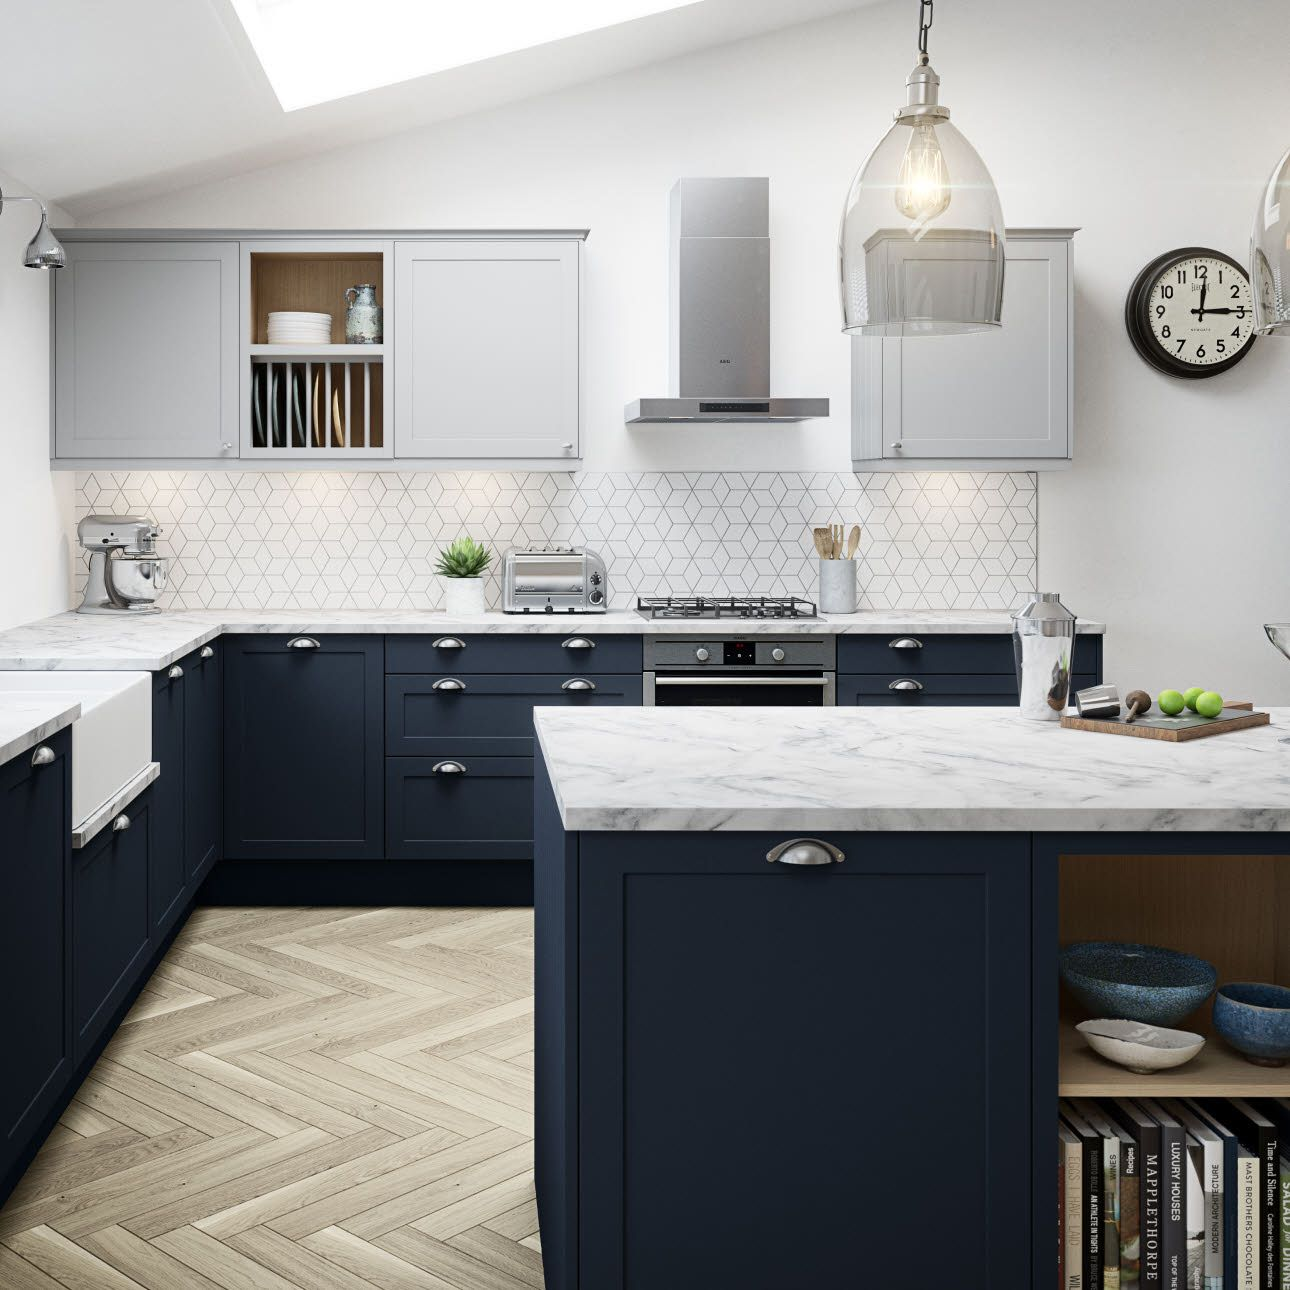 kitchens with black appliances and light cabinets homedecor livingroom bathroom kitchen on kitchen cabinets blue id=49283